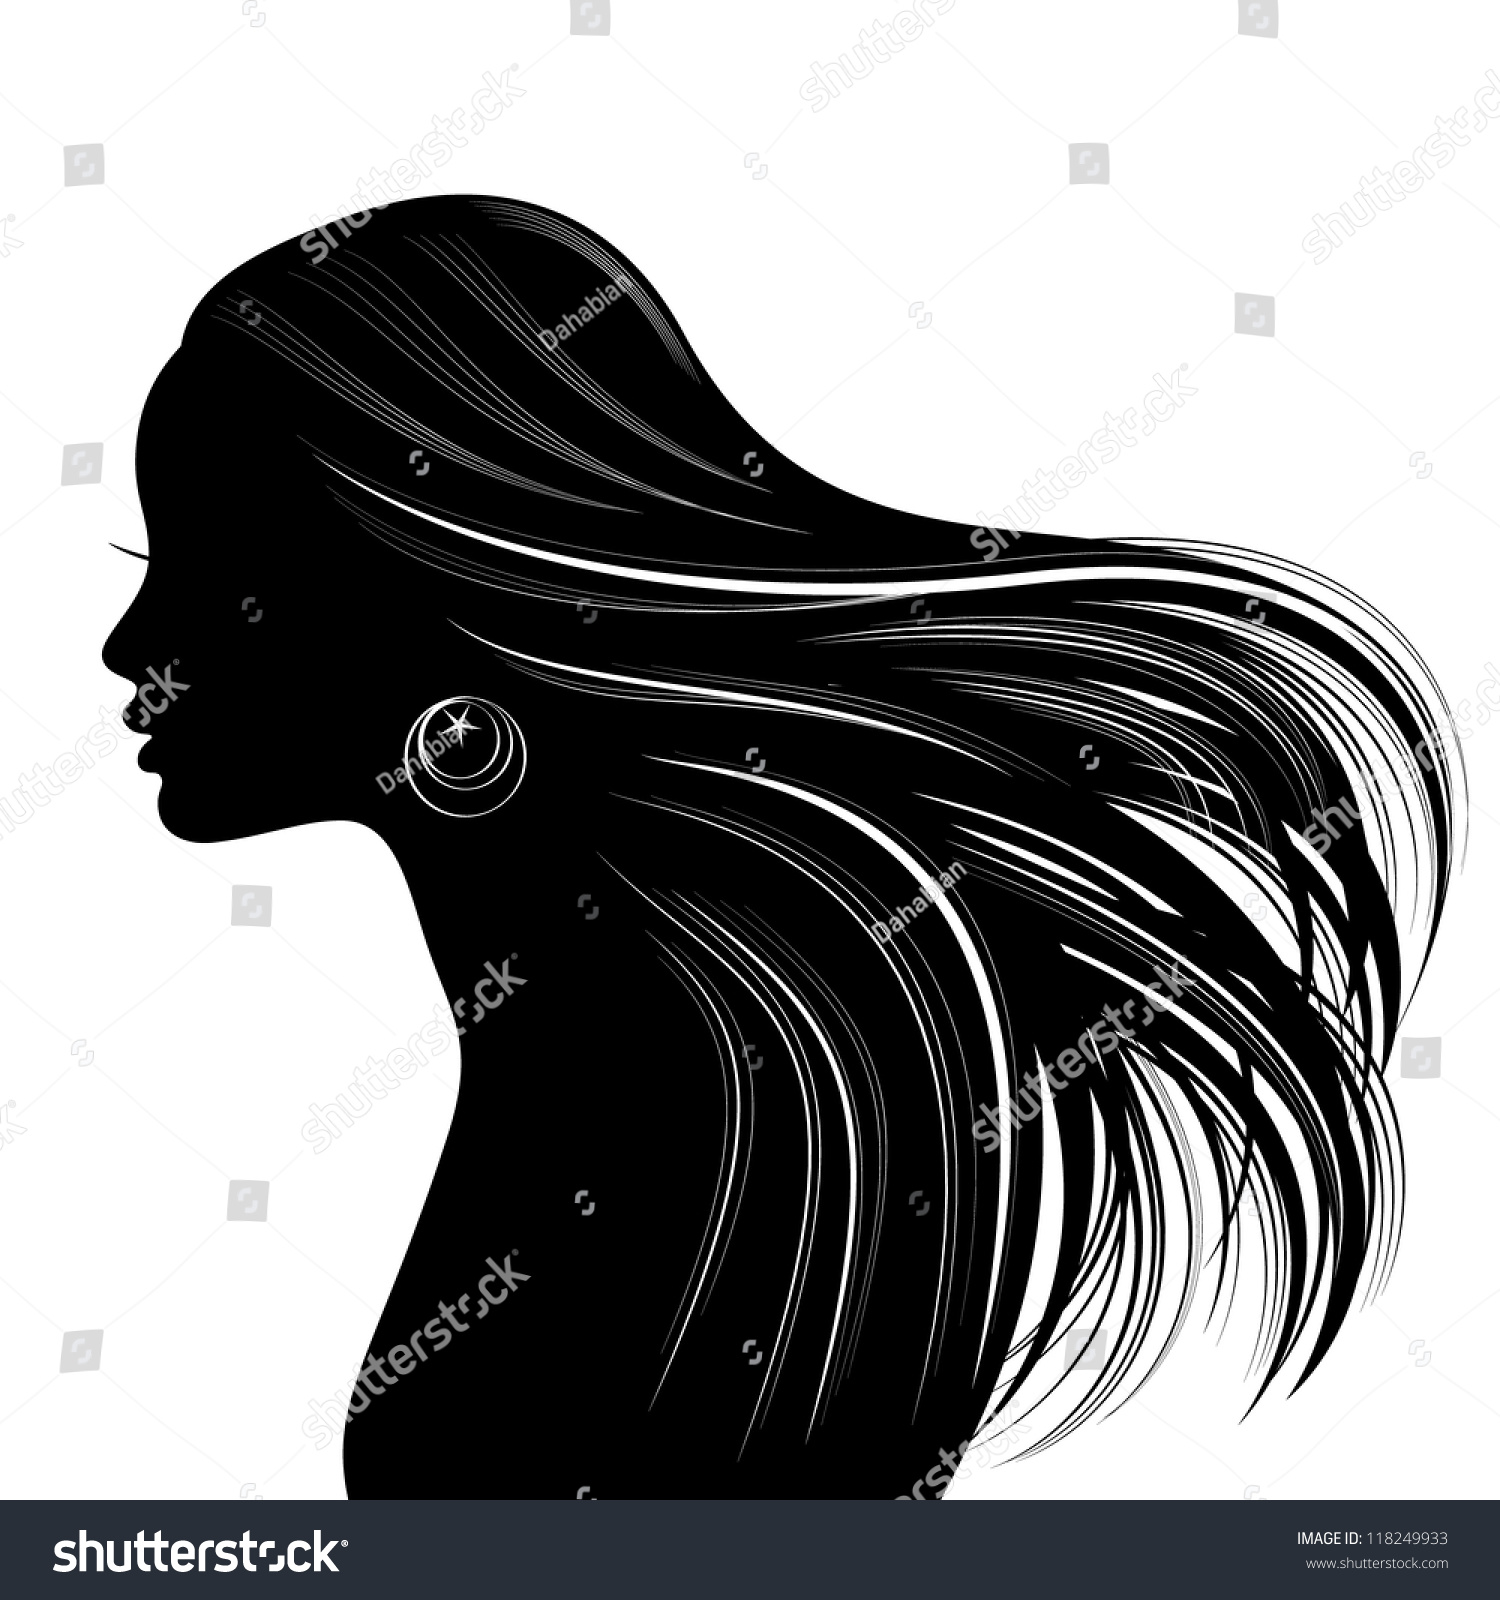 hairstyles for medium length natural hair : Hairstyle Silhouette Woman hair style silhouette. raster version stock ...